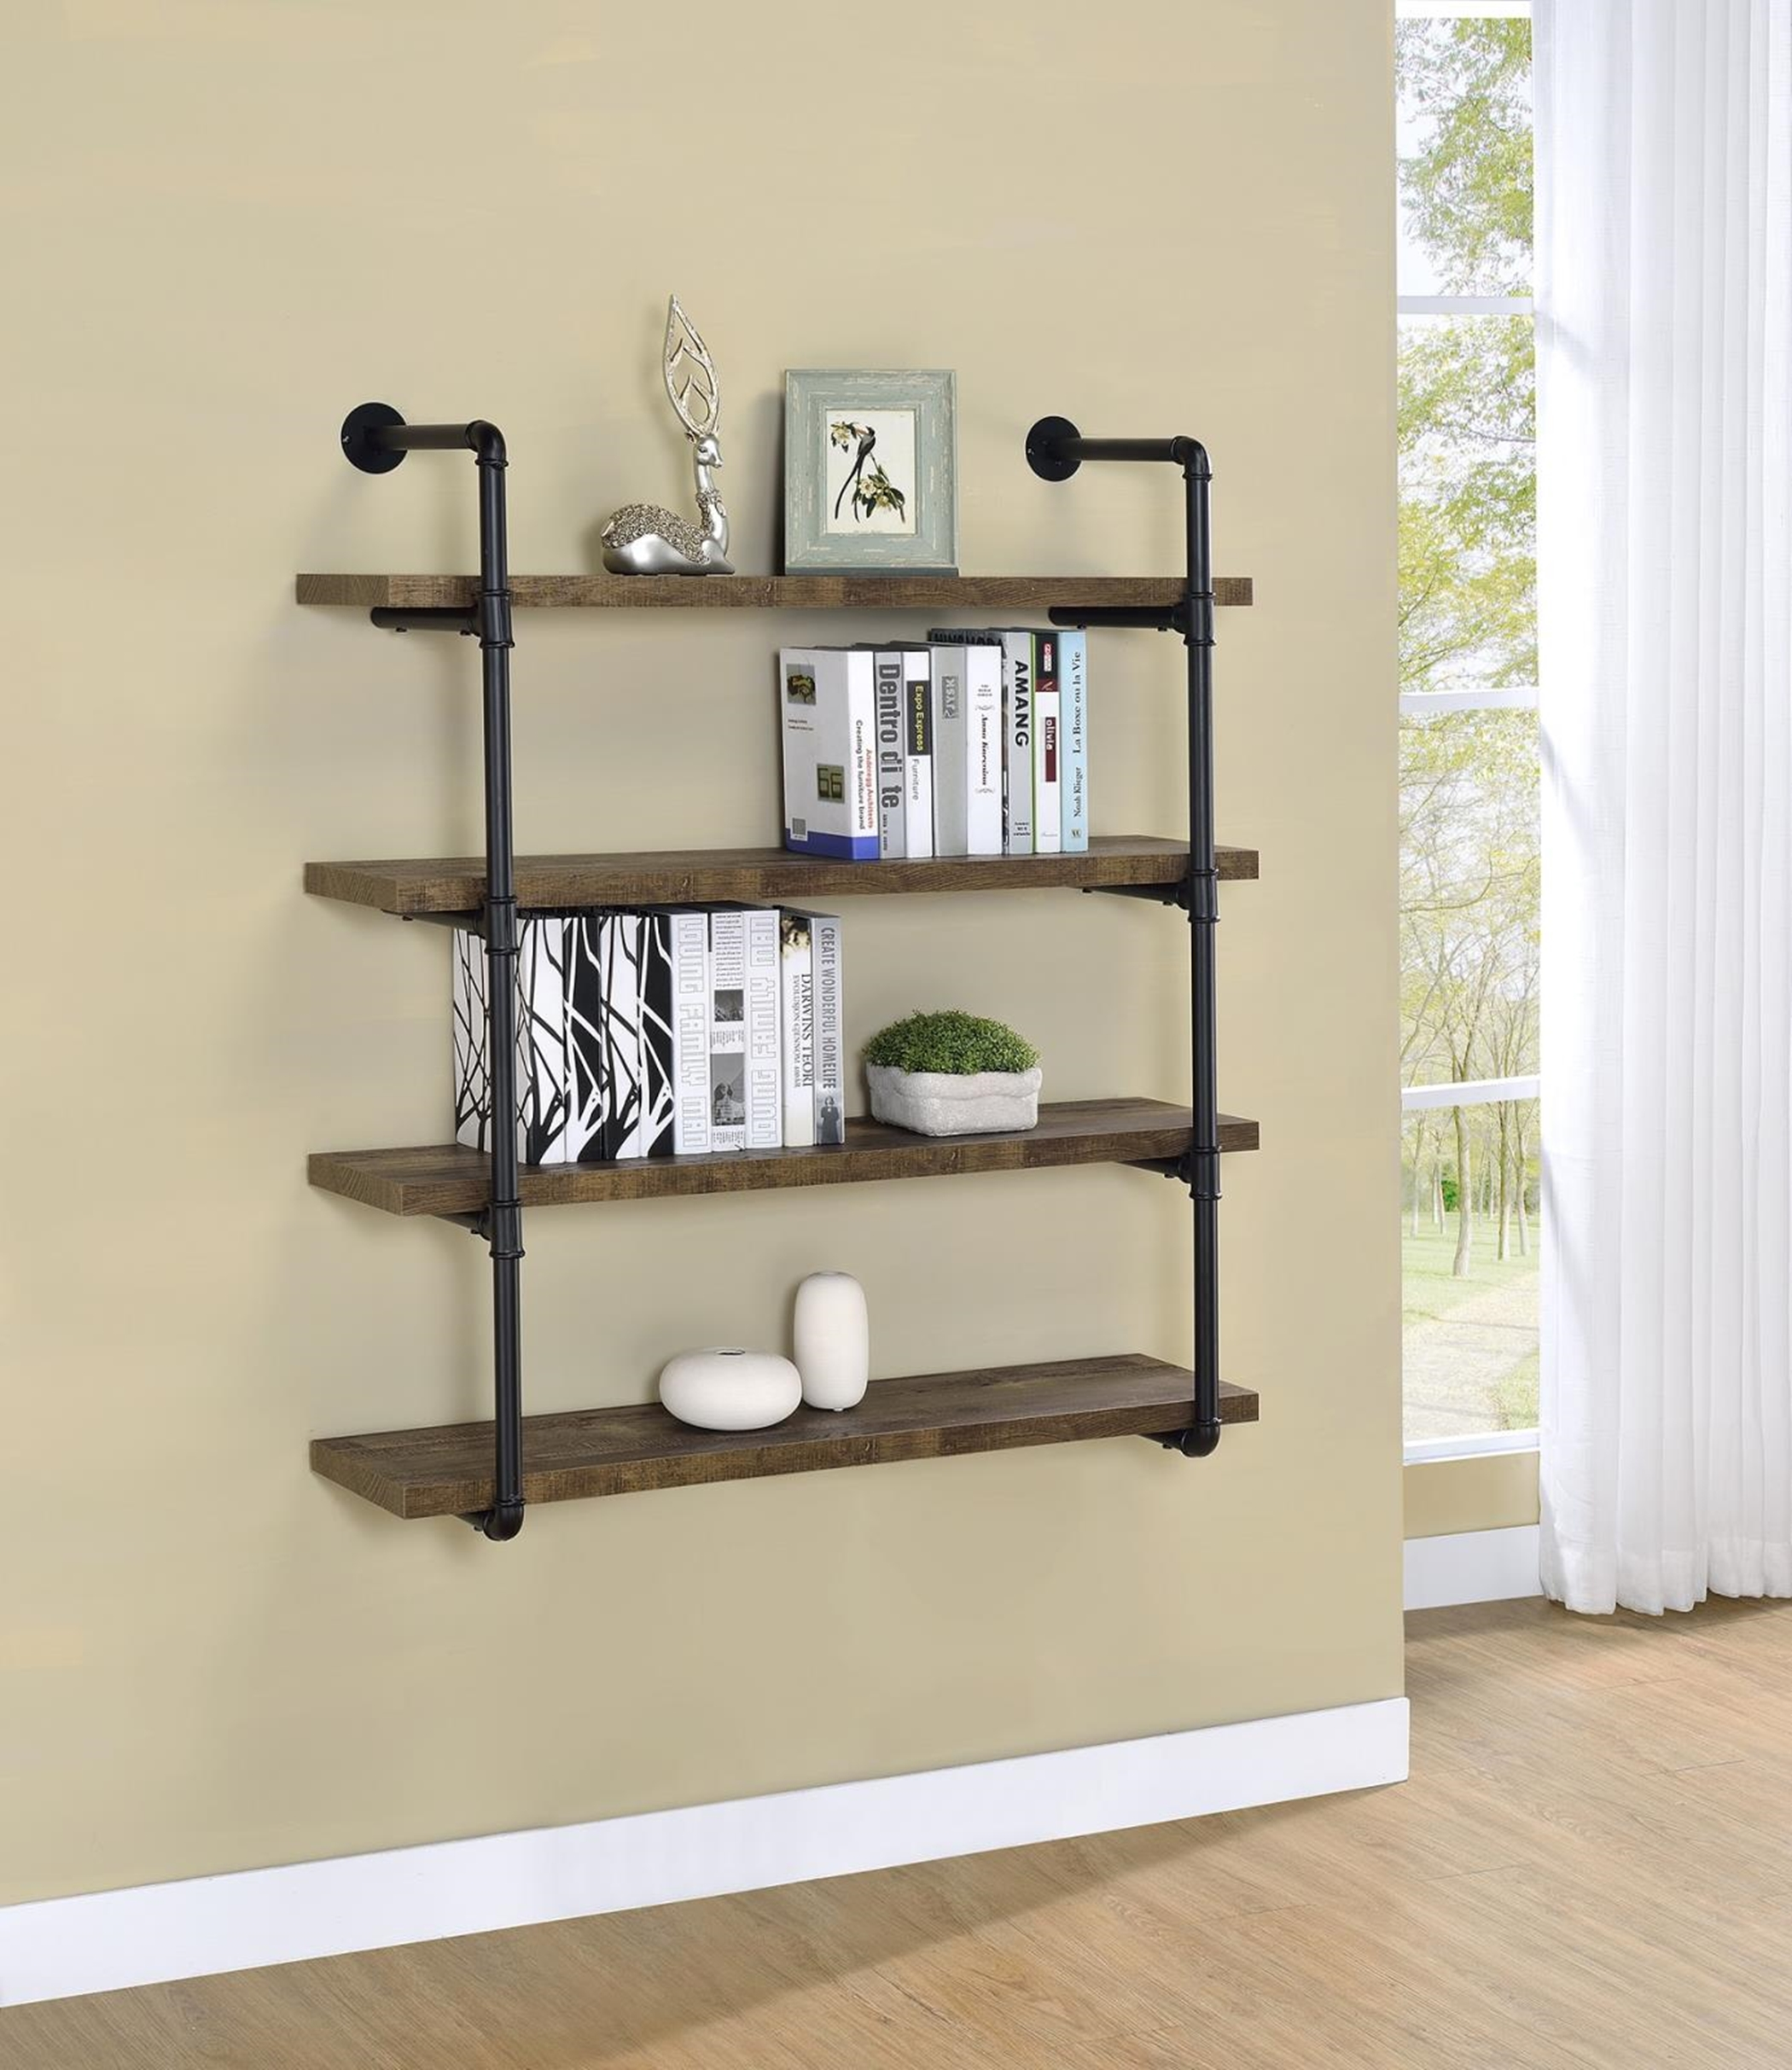 804417 - 40in.w Wall Shelf